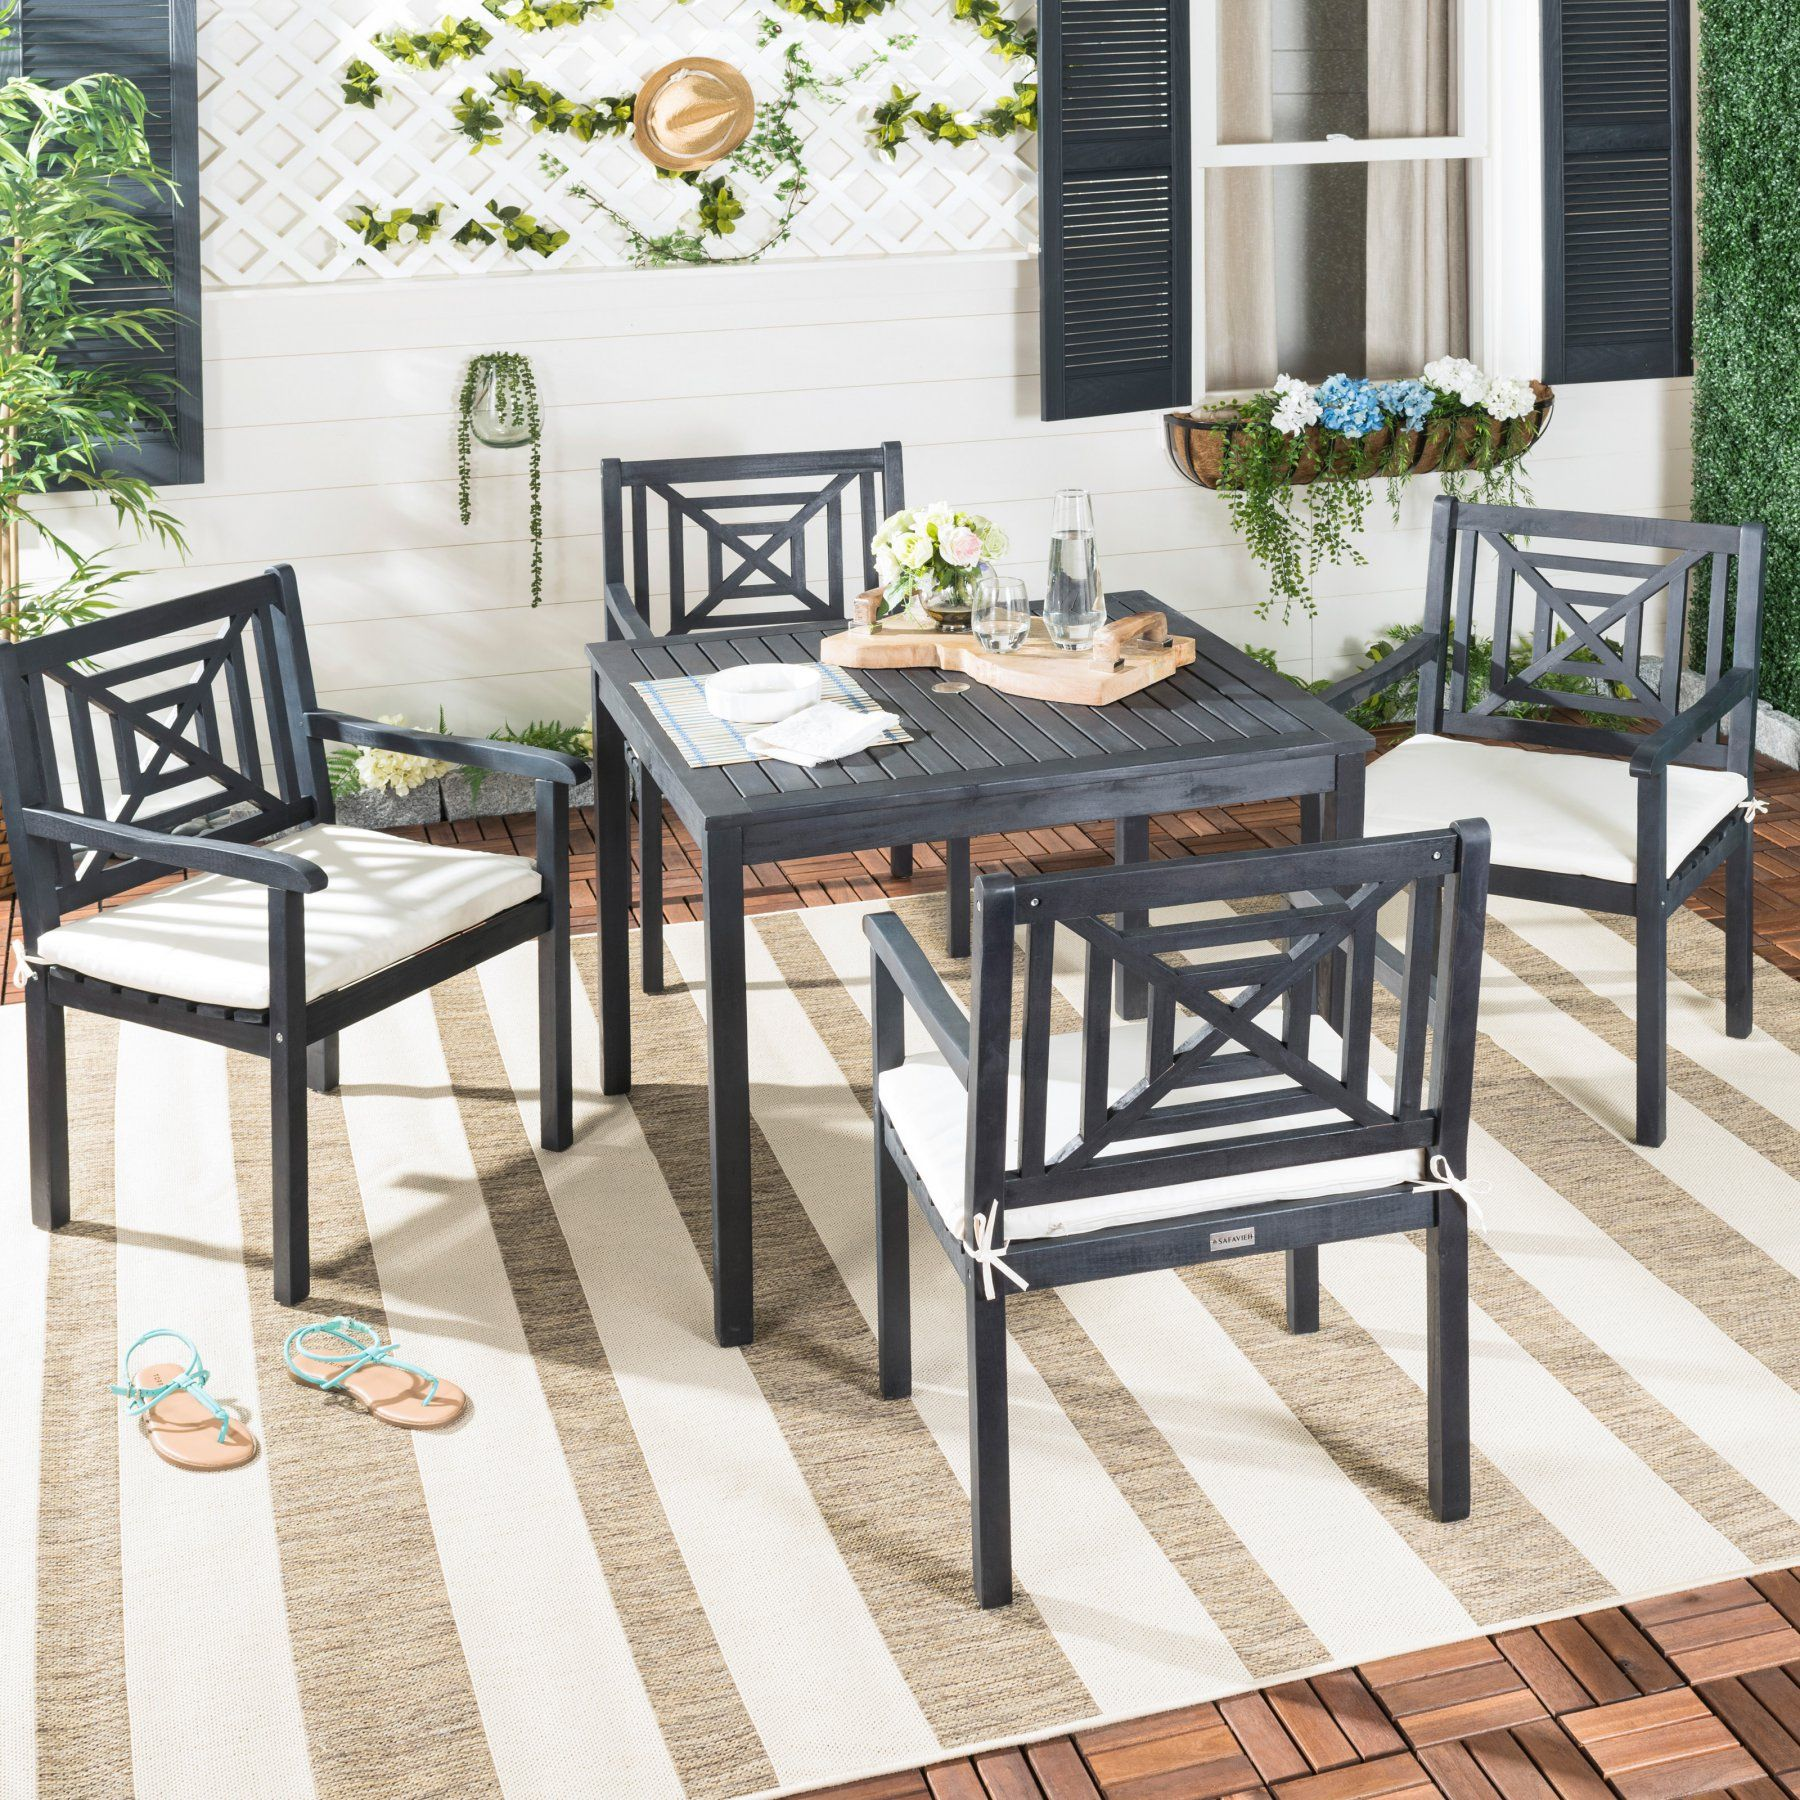 Outdoor Safavieh Del Mar Patio Dining Table Set  Pat6722K